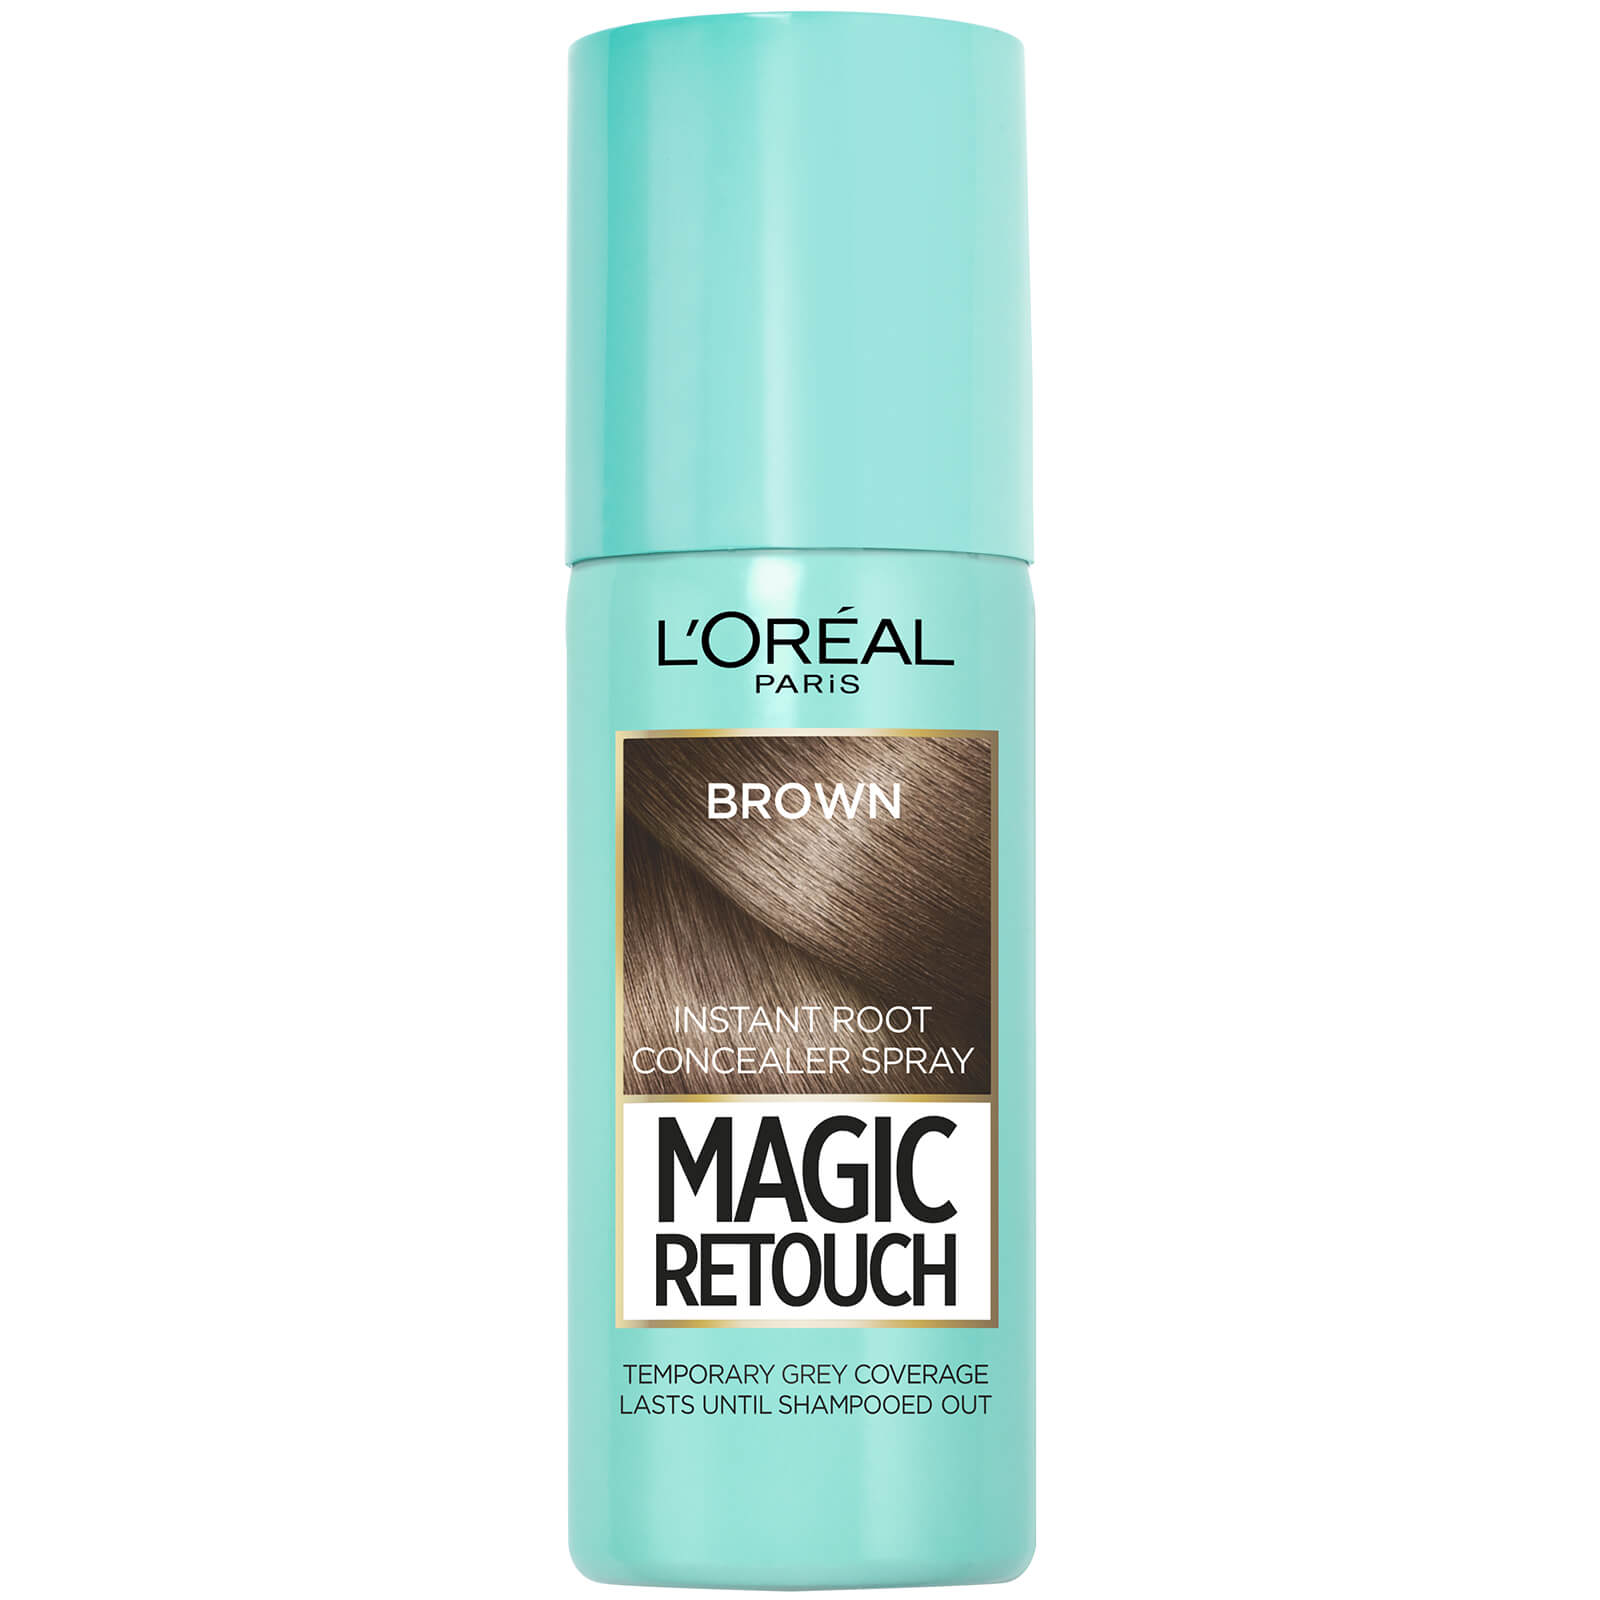 L'Oréal Paris Magic Retouch Temporary Instant Root Concealer Spray 75ml (Various Shades) - Brown